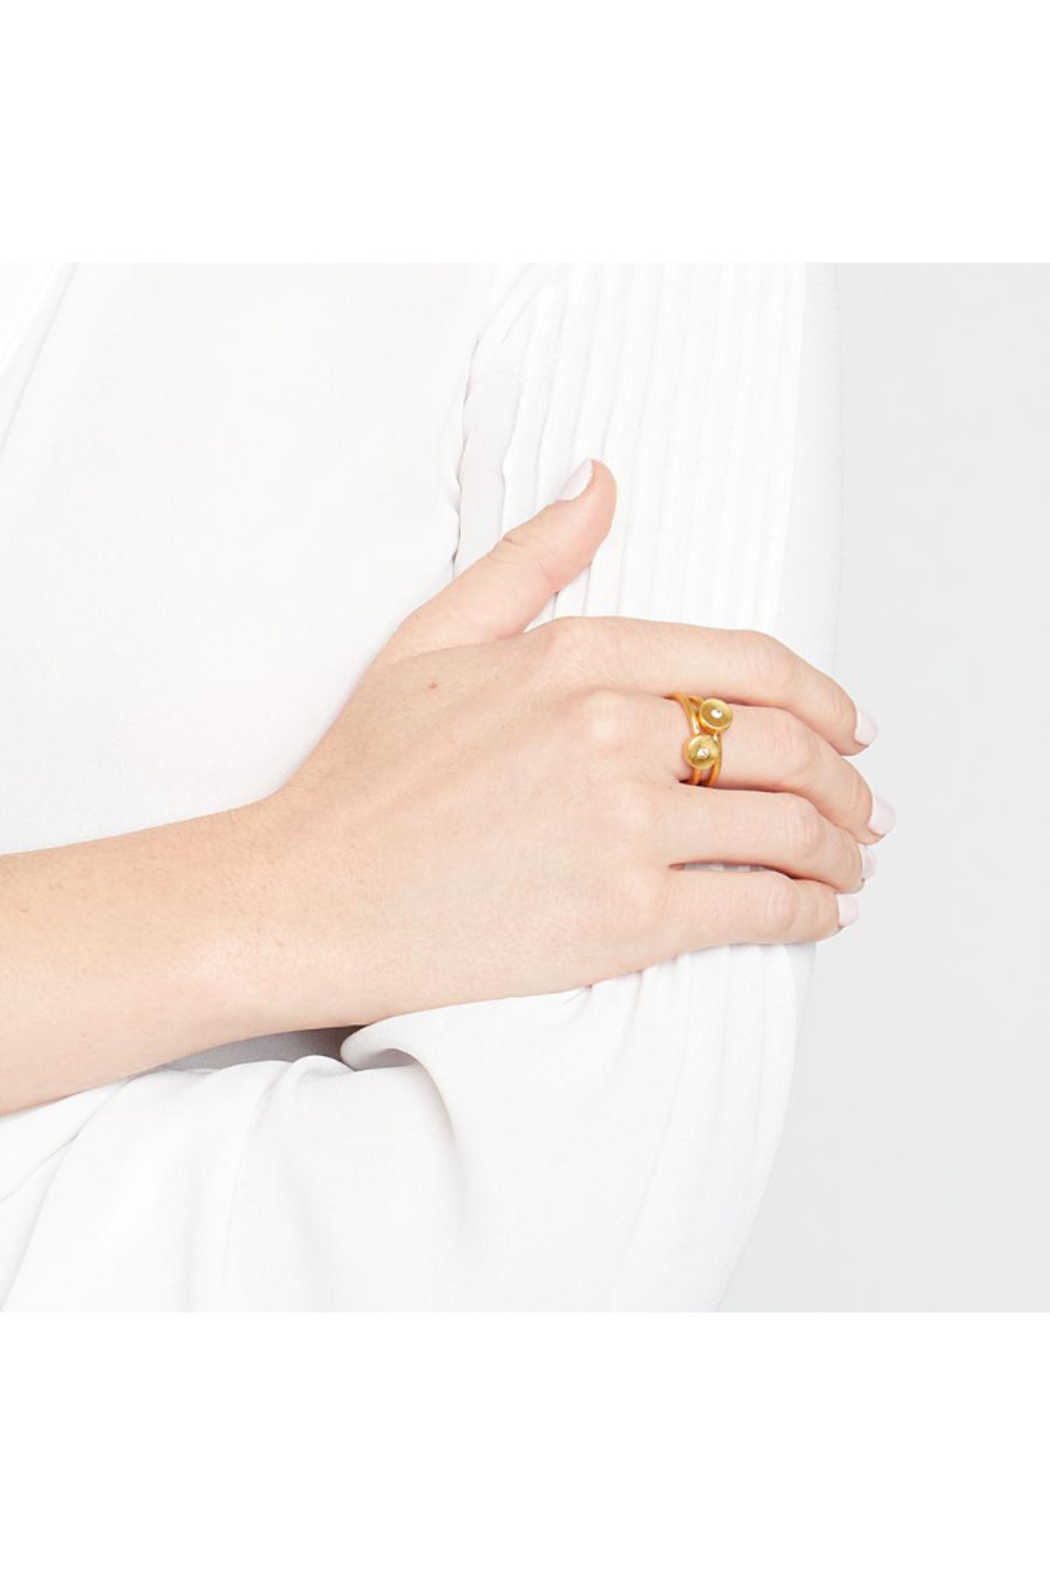 Julie Vos Poppy Stacking Rings Gold-Pearl (Set Of 2) Size 7 - Front Full Image